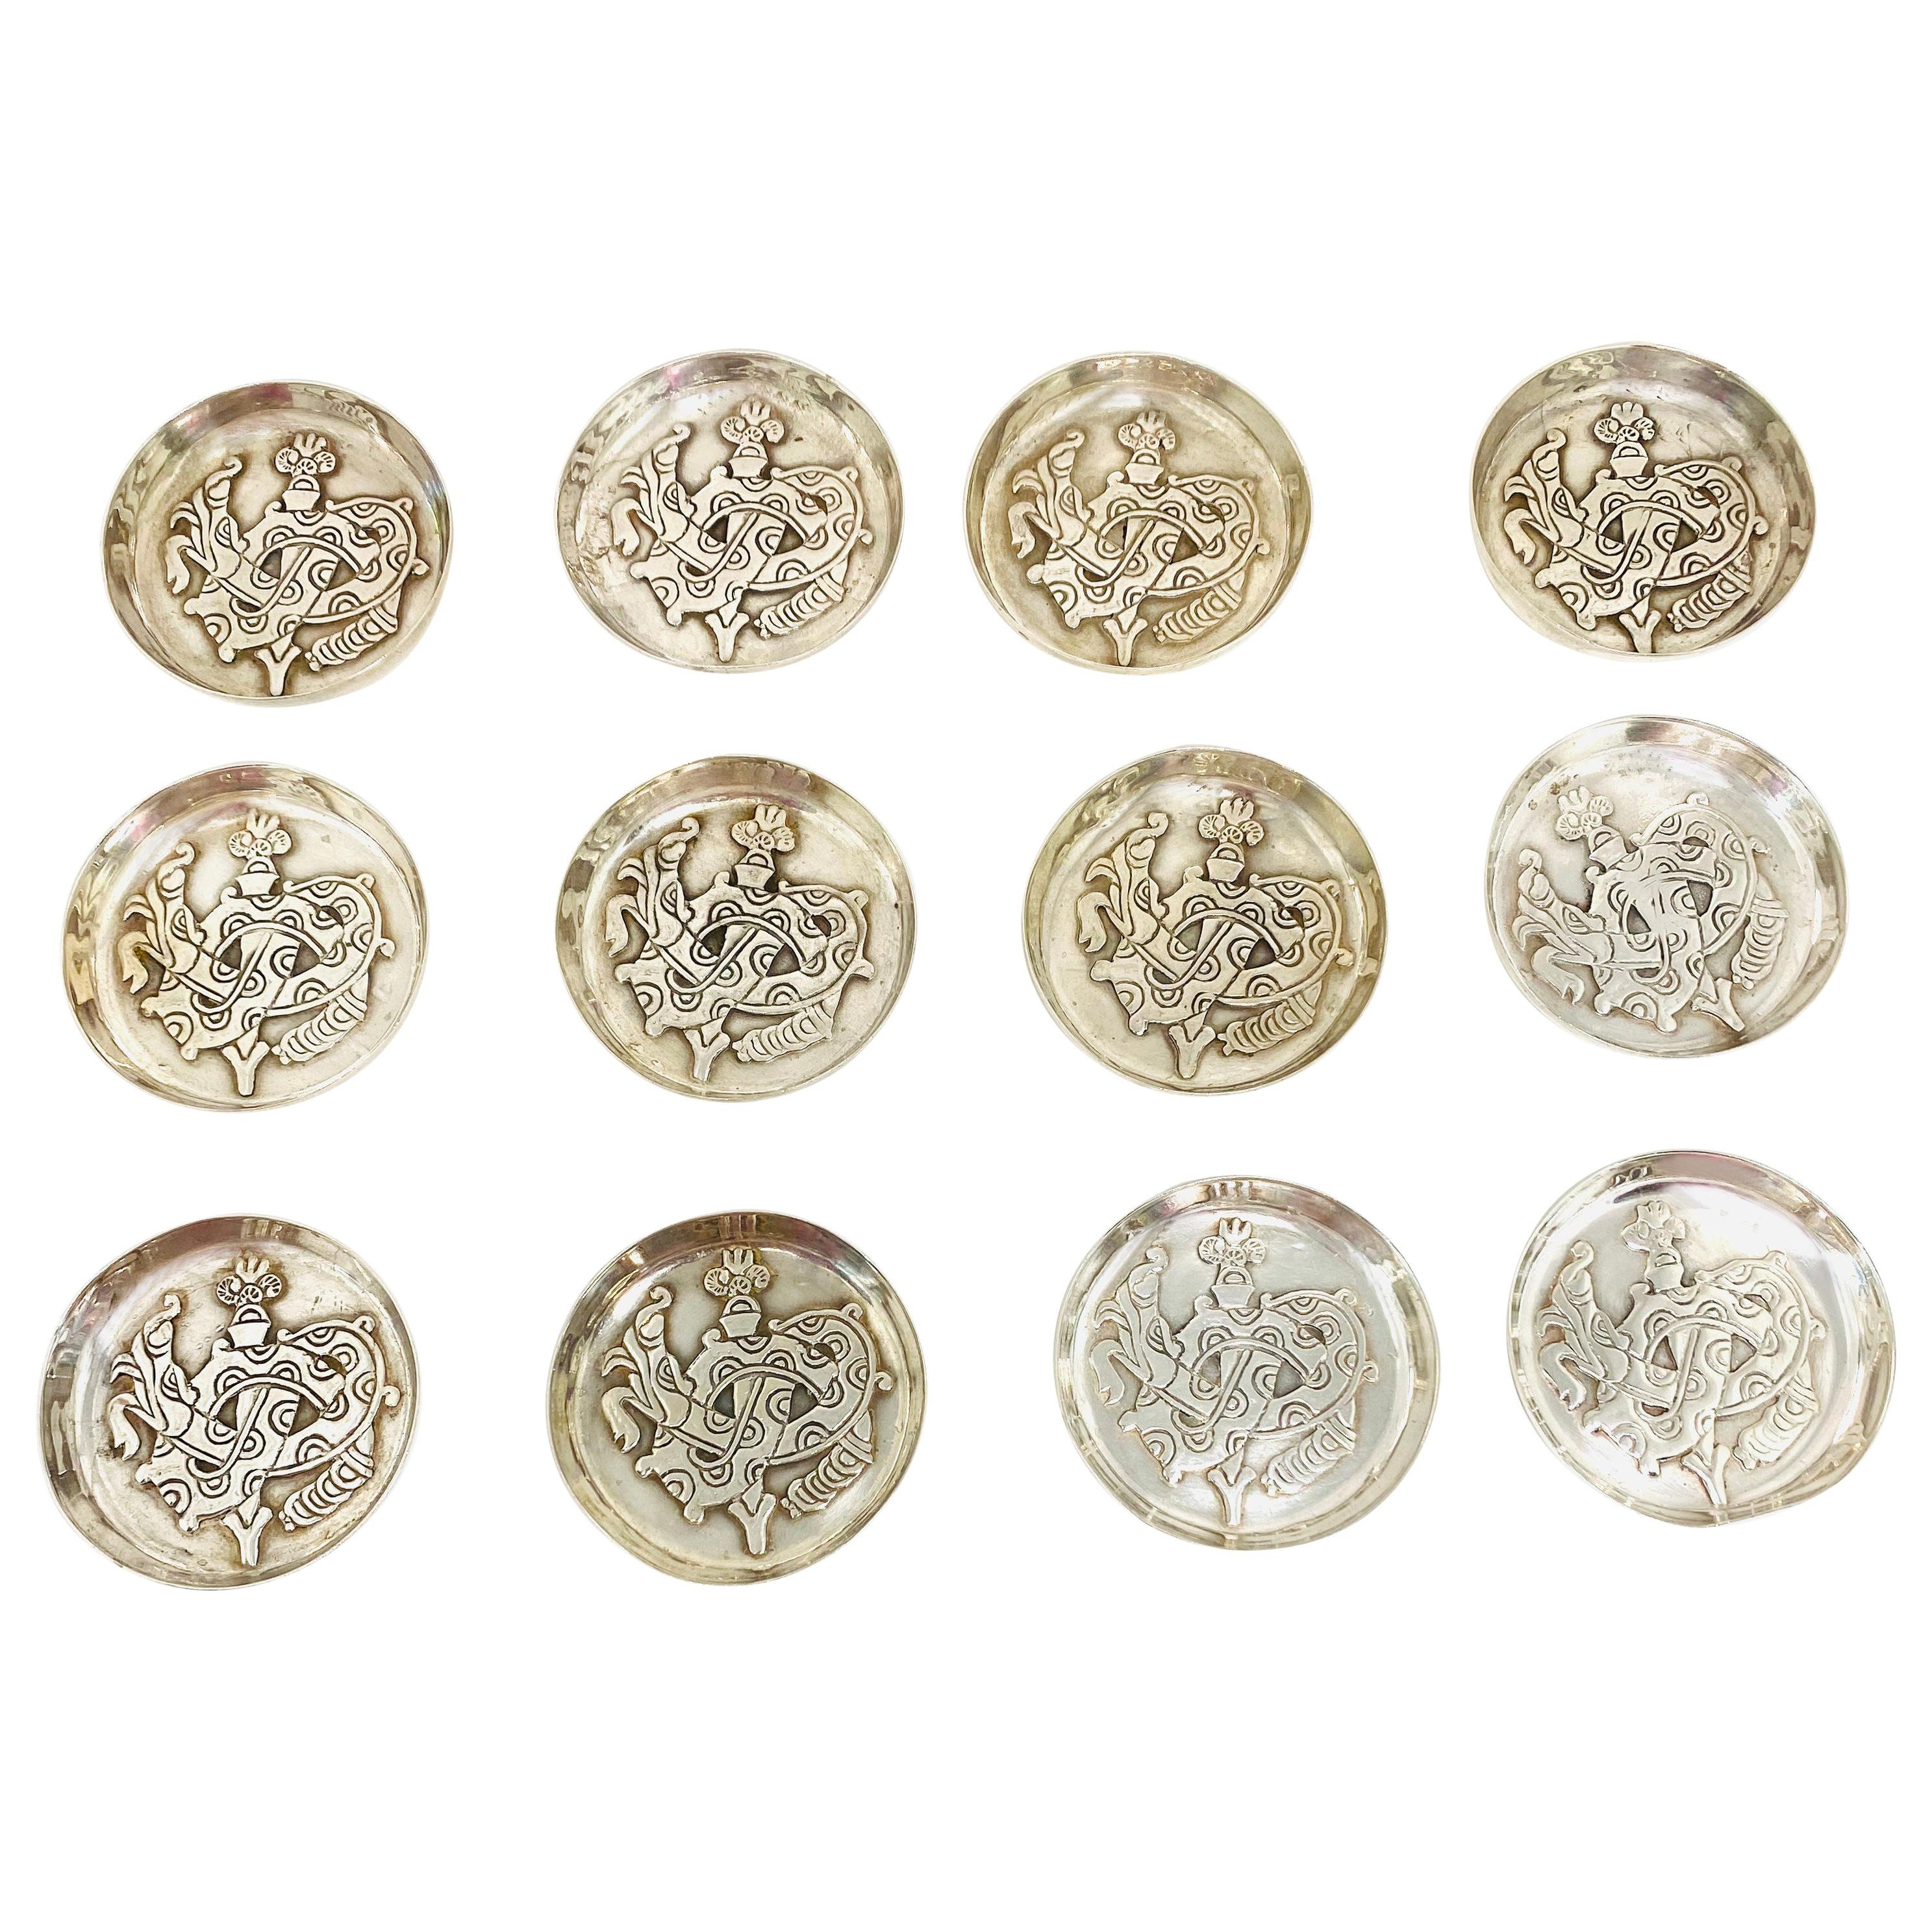 1920s Sterling Silver Decorative Mini Dishes Set of 12